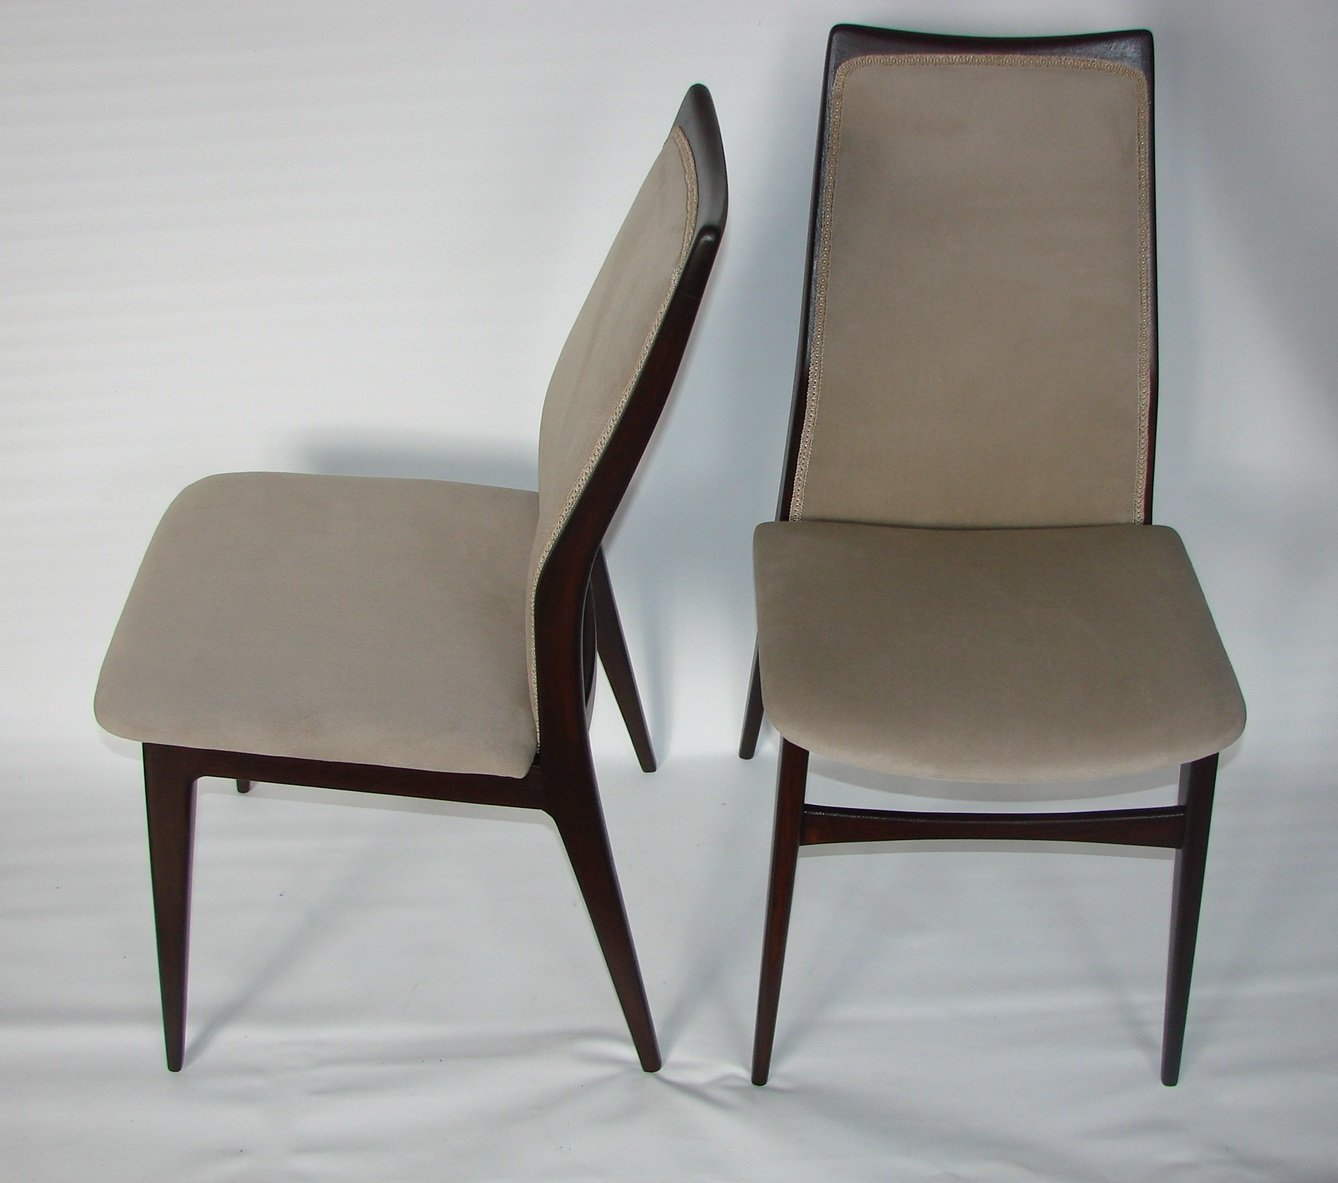 design sofa moderne sitzmobel italien, chairs from benze sitzmobel, 1960s, set of 2 for sale at pamono, Design ideen